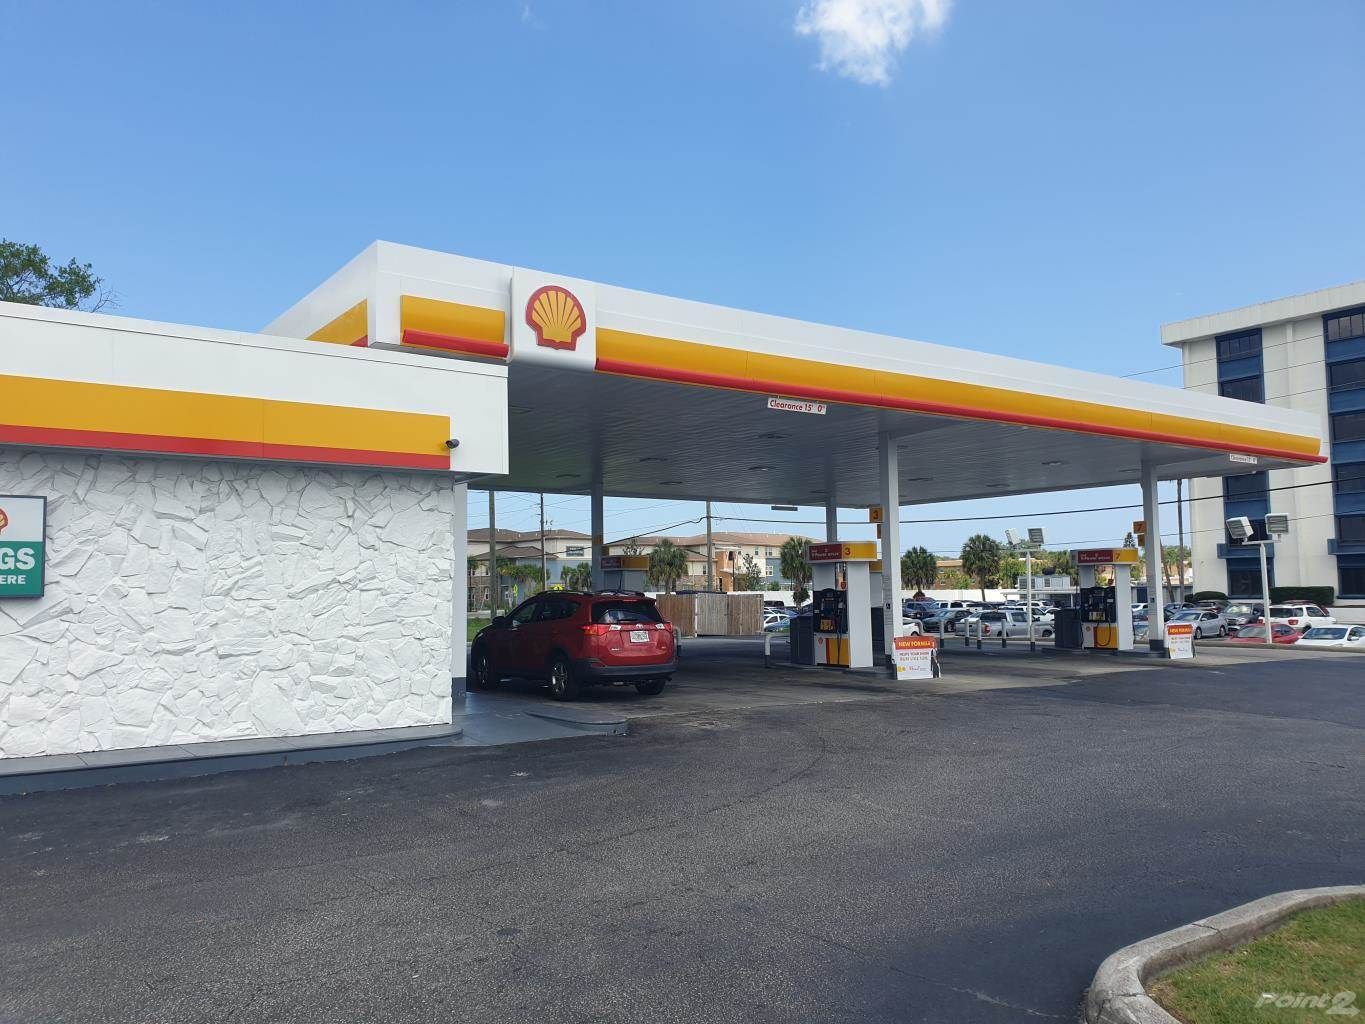 Commercial à vendre en Branded High Volume Gas Station For Sale in Tampa Bay Florida USA, Trinity, Floride ,34691  , États-Unis